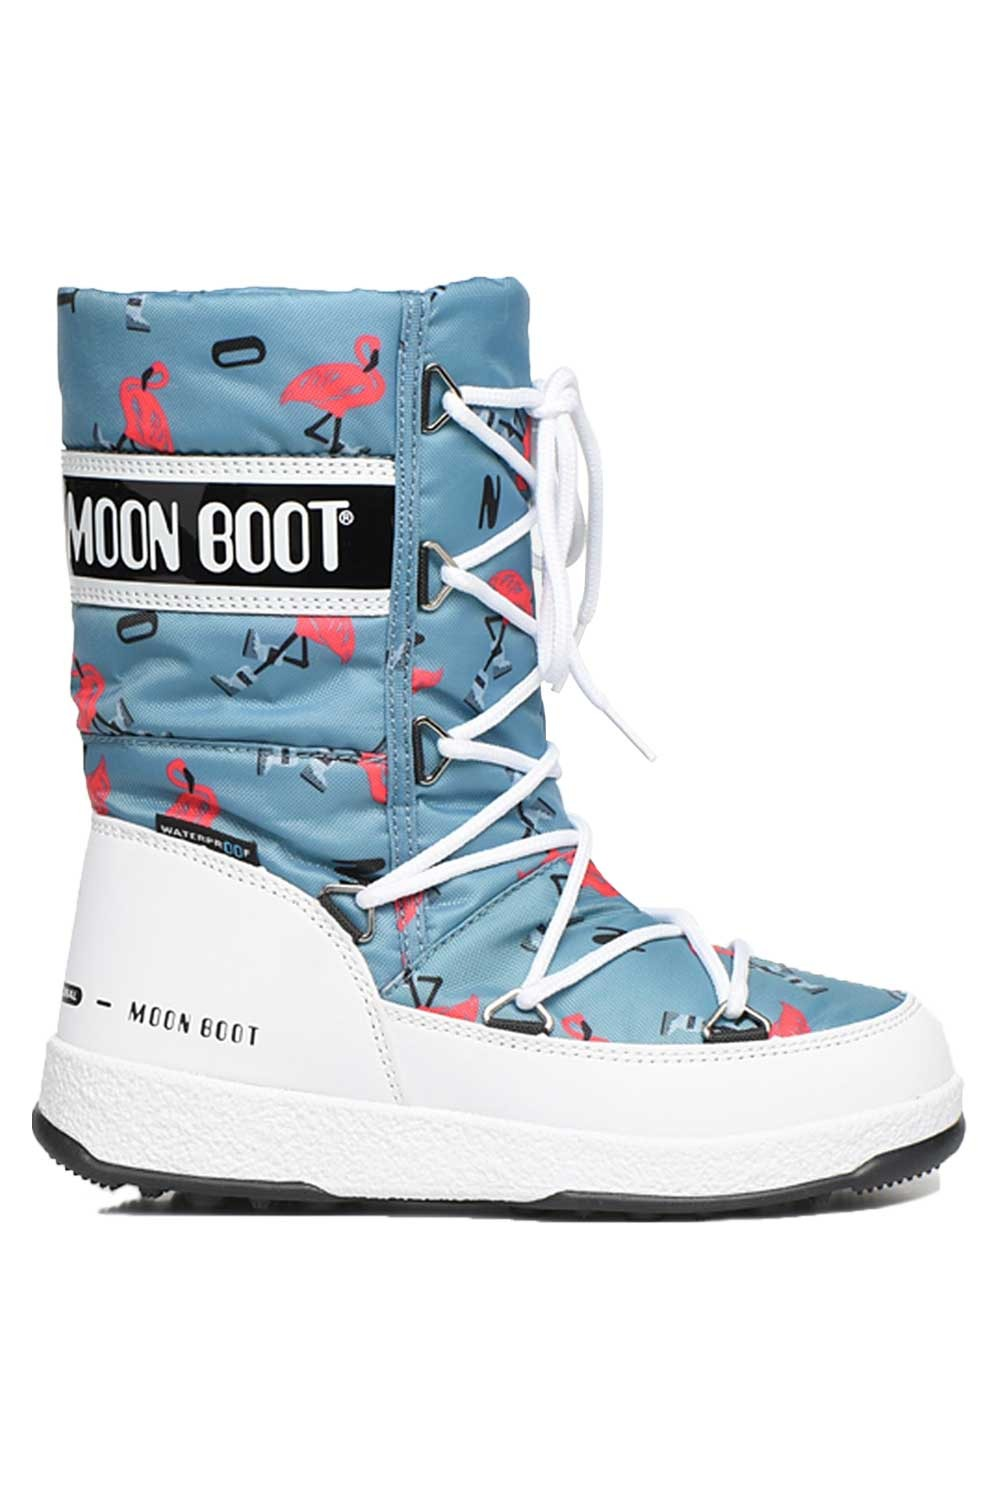 문부츠 키즈 방한부츠 JR 걸 퀼티드 플라밍고 WP_MOONBOOT YOUTH MOON BOOT JR GIRL QUILTED FLAMINGO WP_WHITE/LIGHT GREEN_VMQ862WE_AVMQ862WE